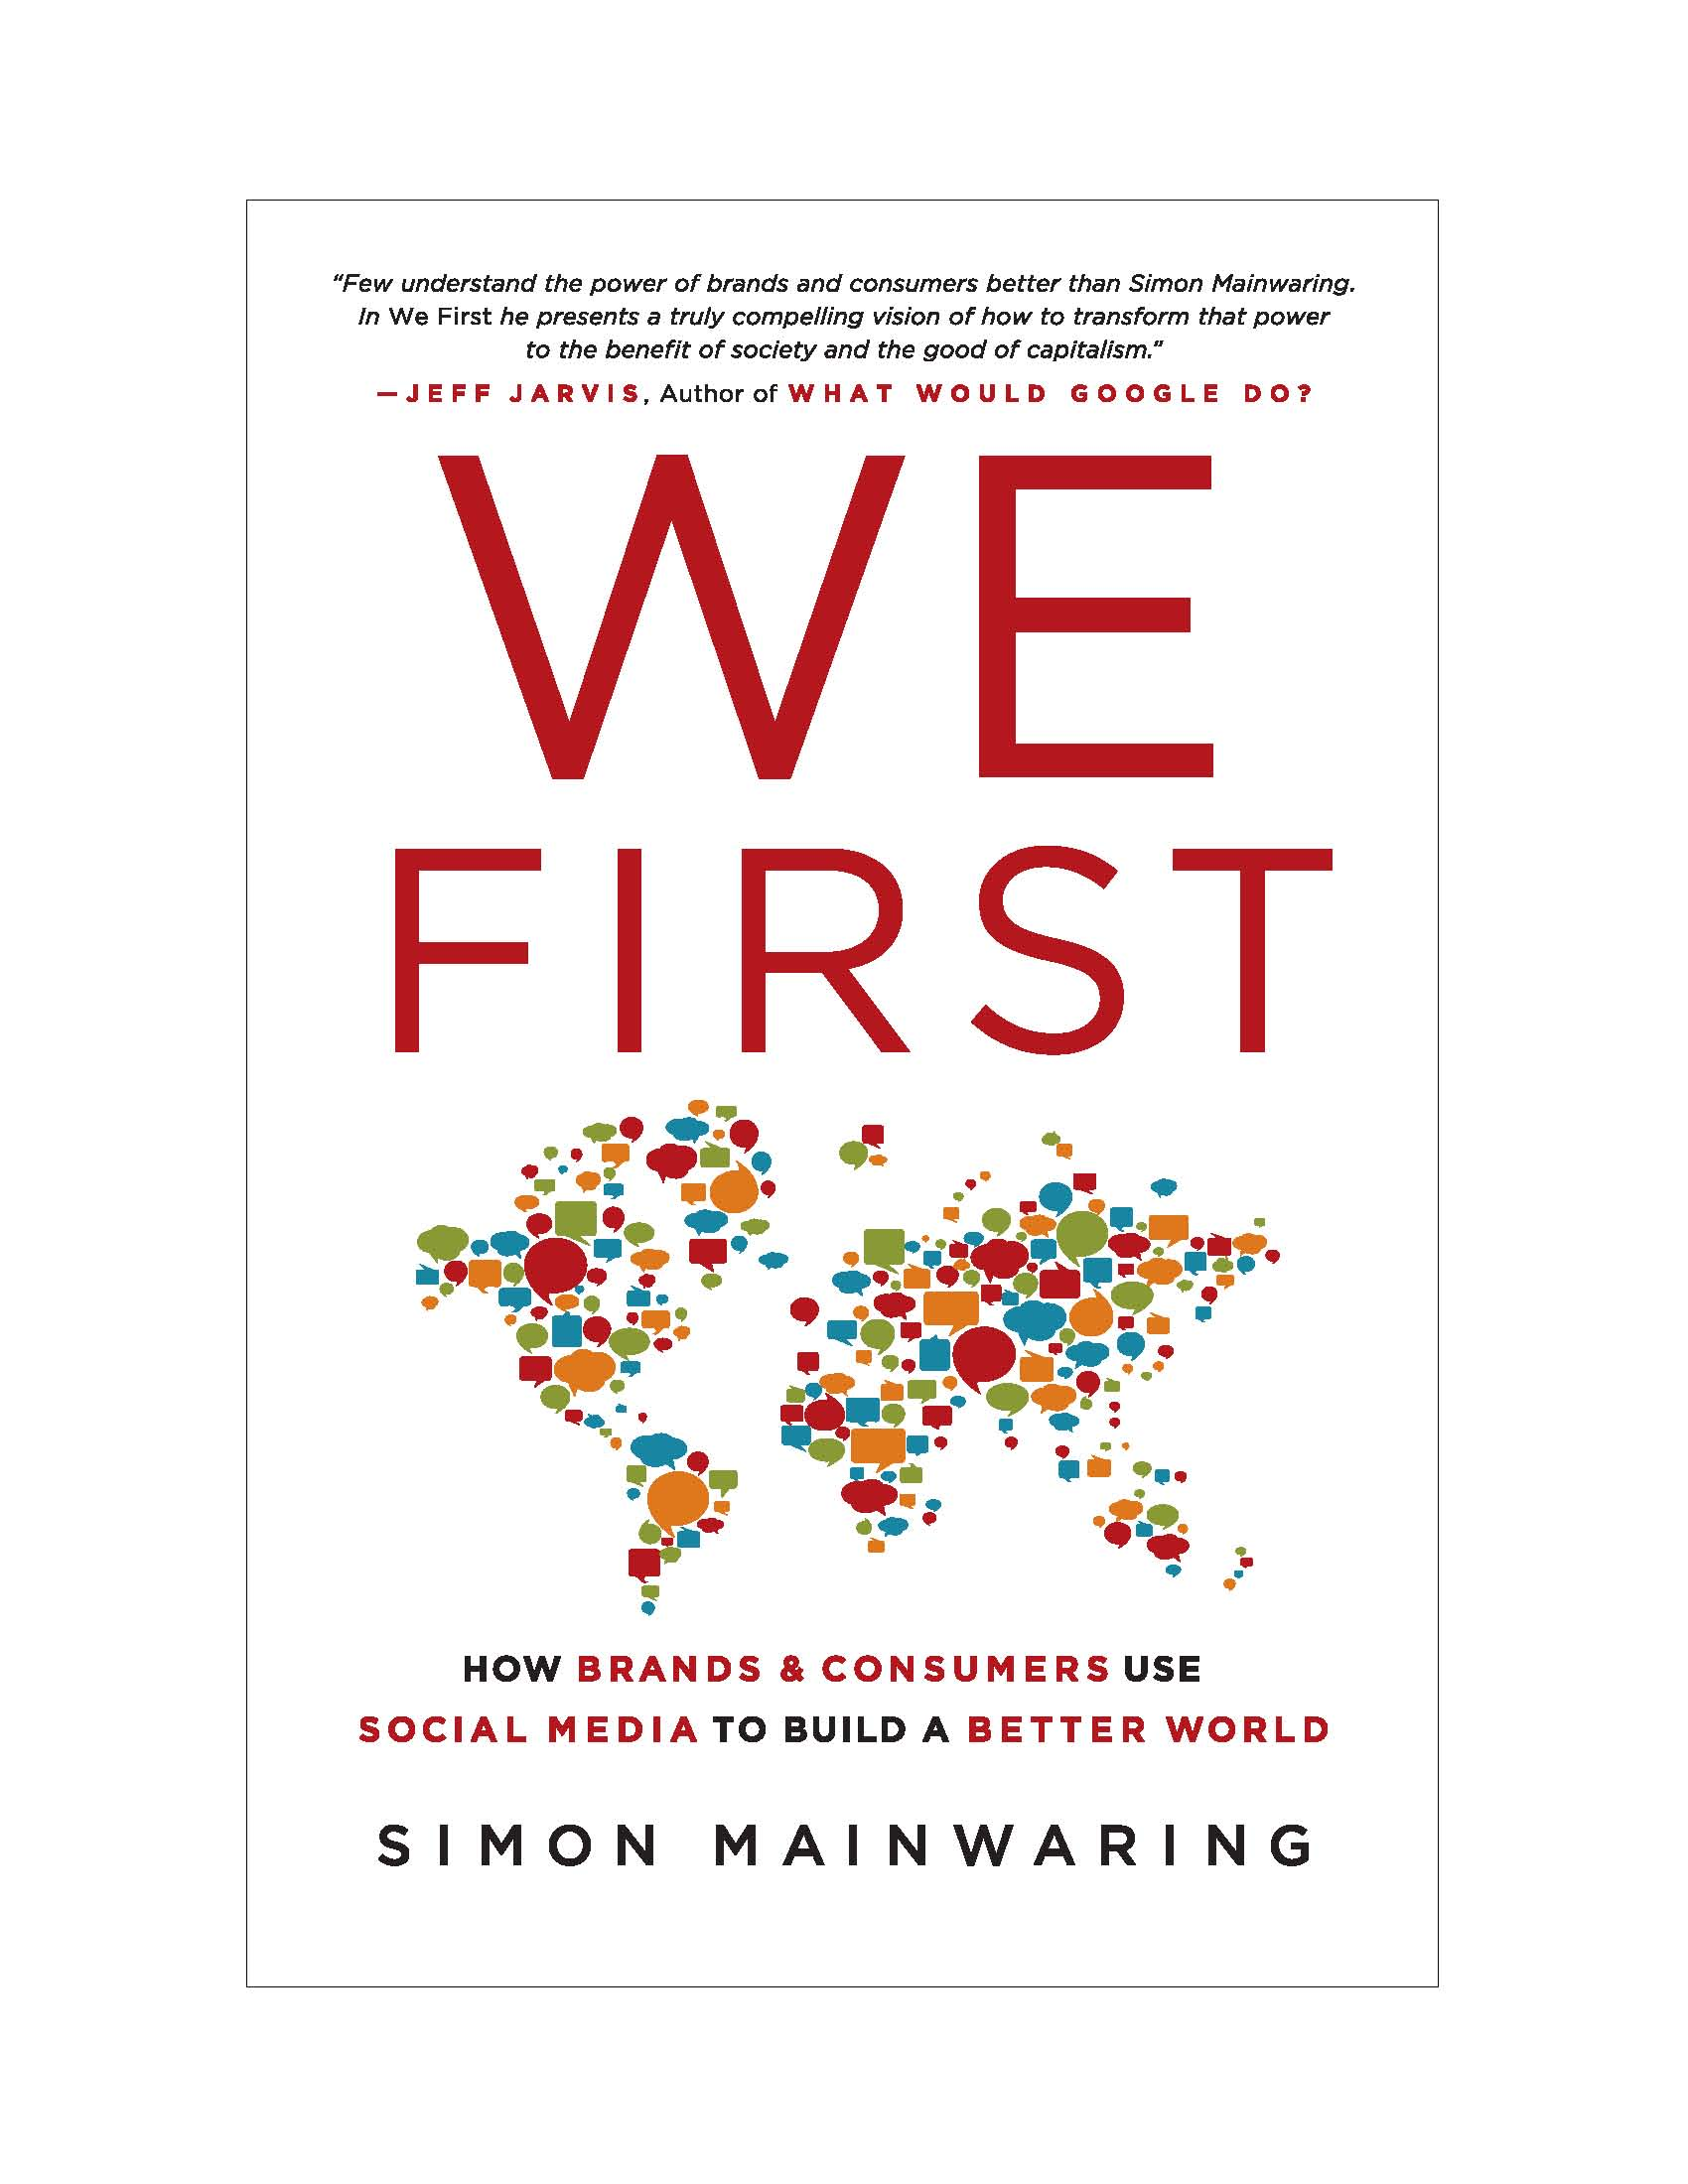 We First: How Brands & Consumers Use Social Media to Build a Better World